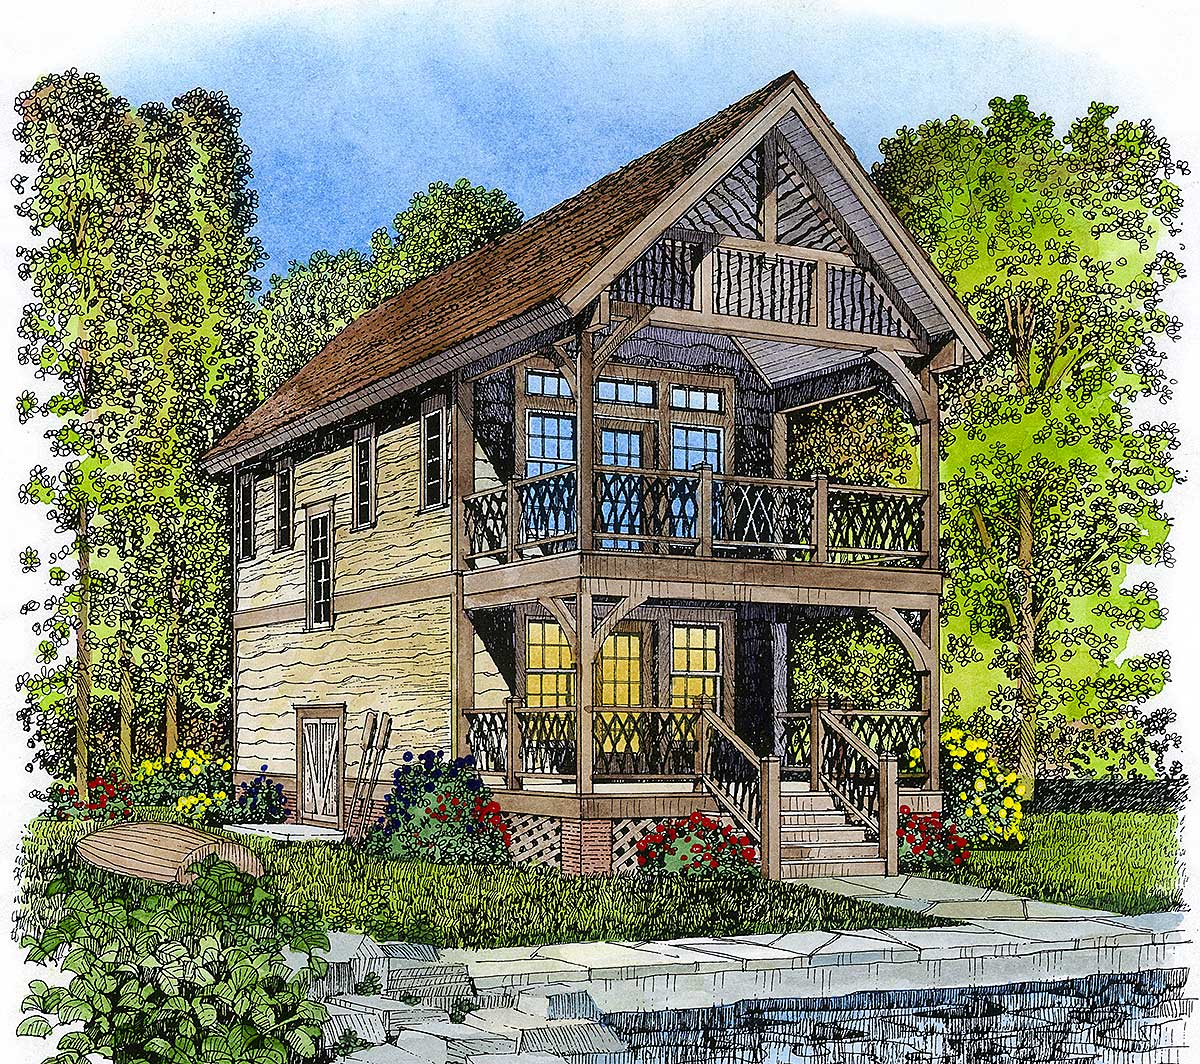 Petite adirondack style retreat 43041pf architectural for Adirondack style homes